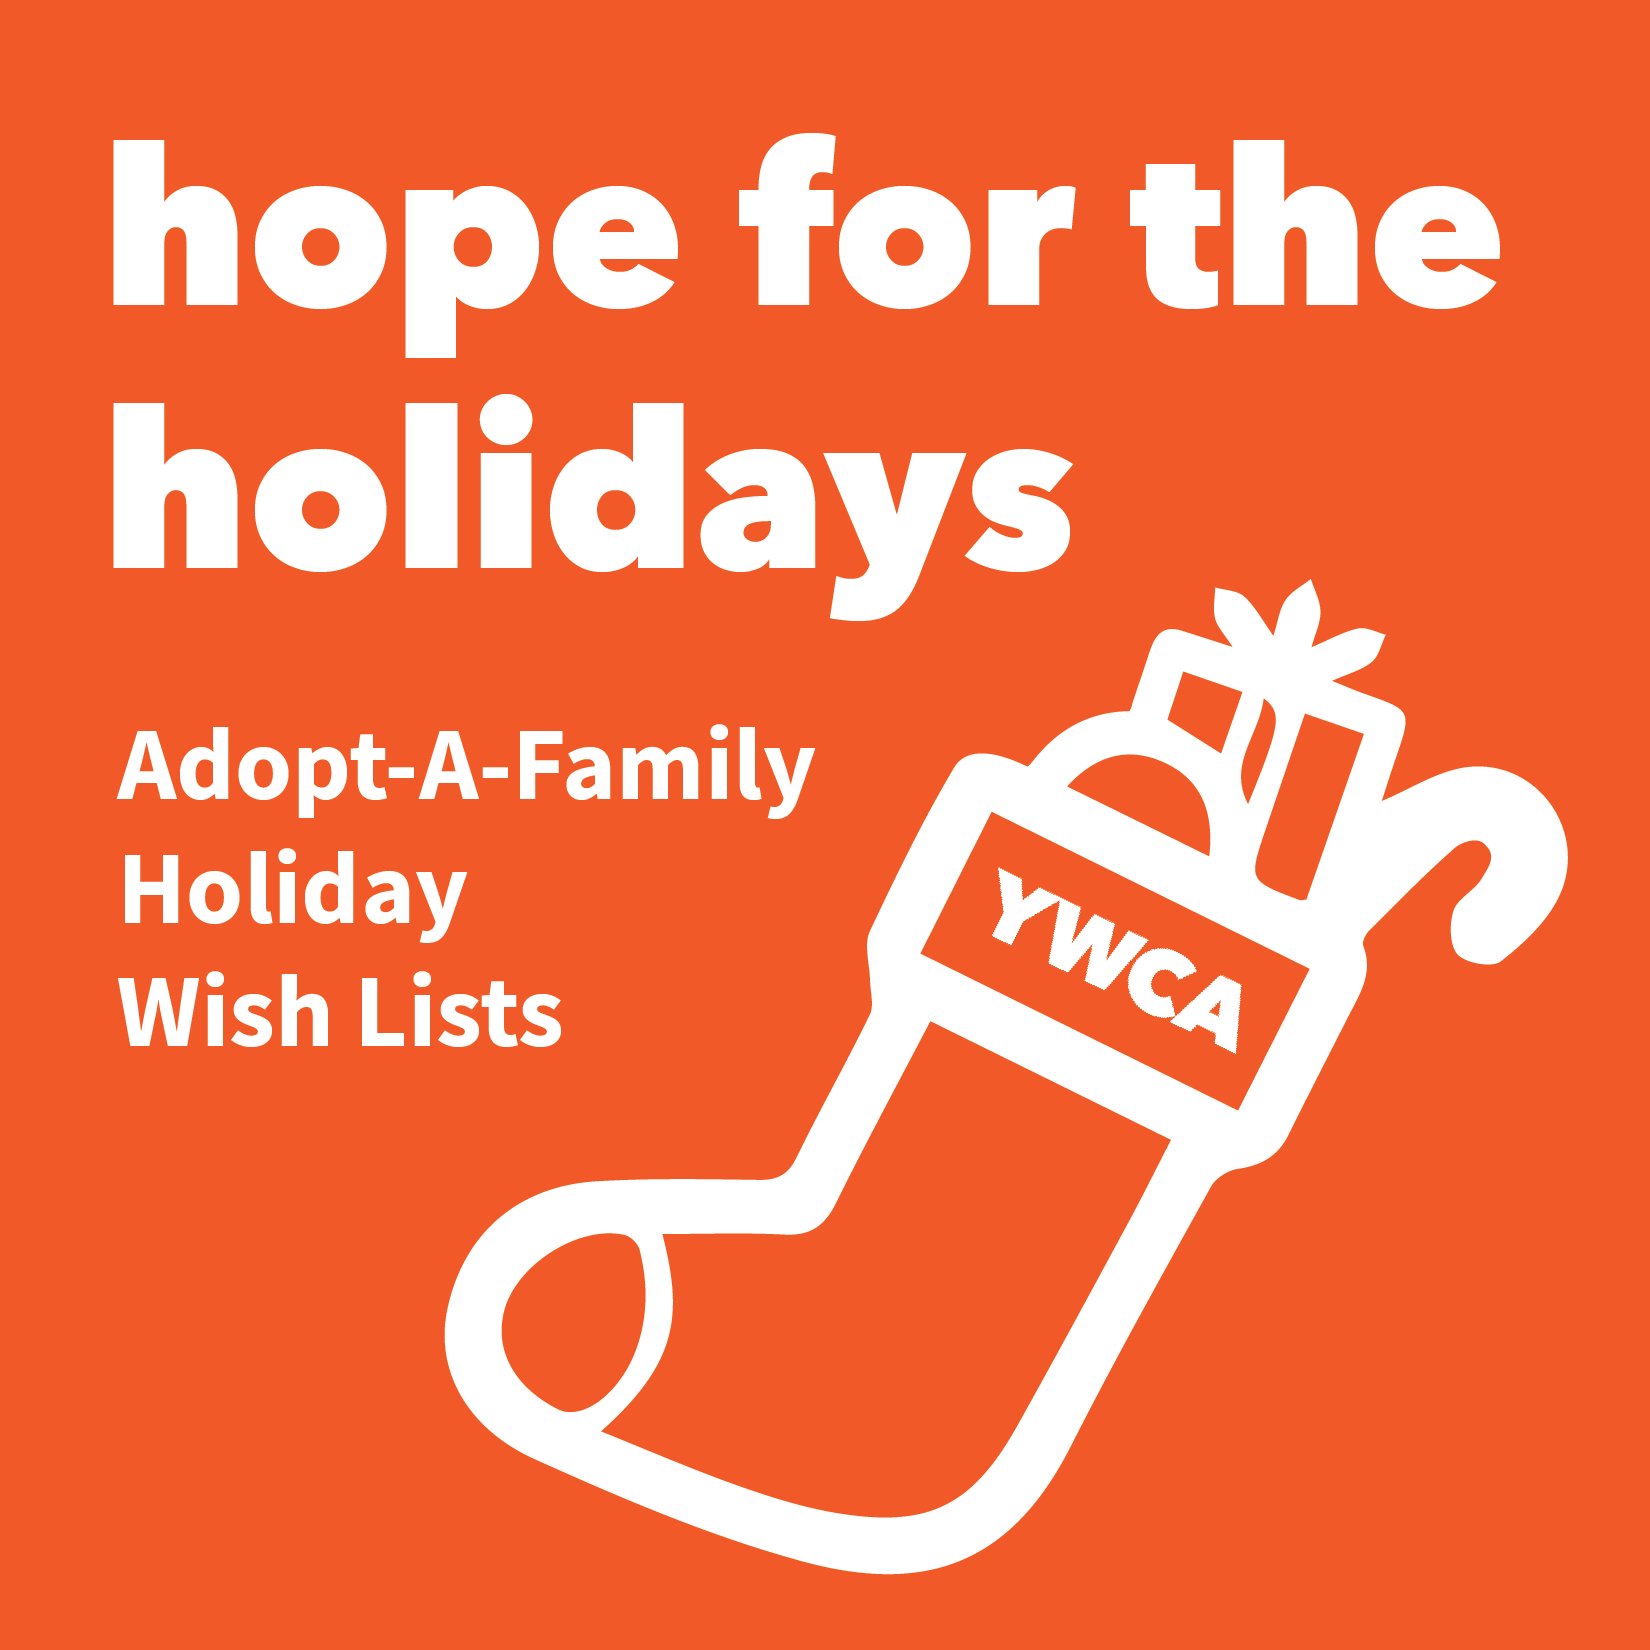 6ae9910a3 This holiday giving program supports women, children and families that have  been affected by domestic violence and abuse. Each mother and her children  ...